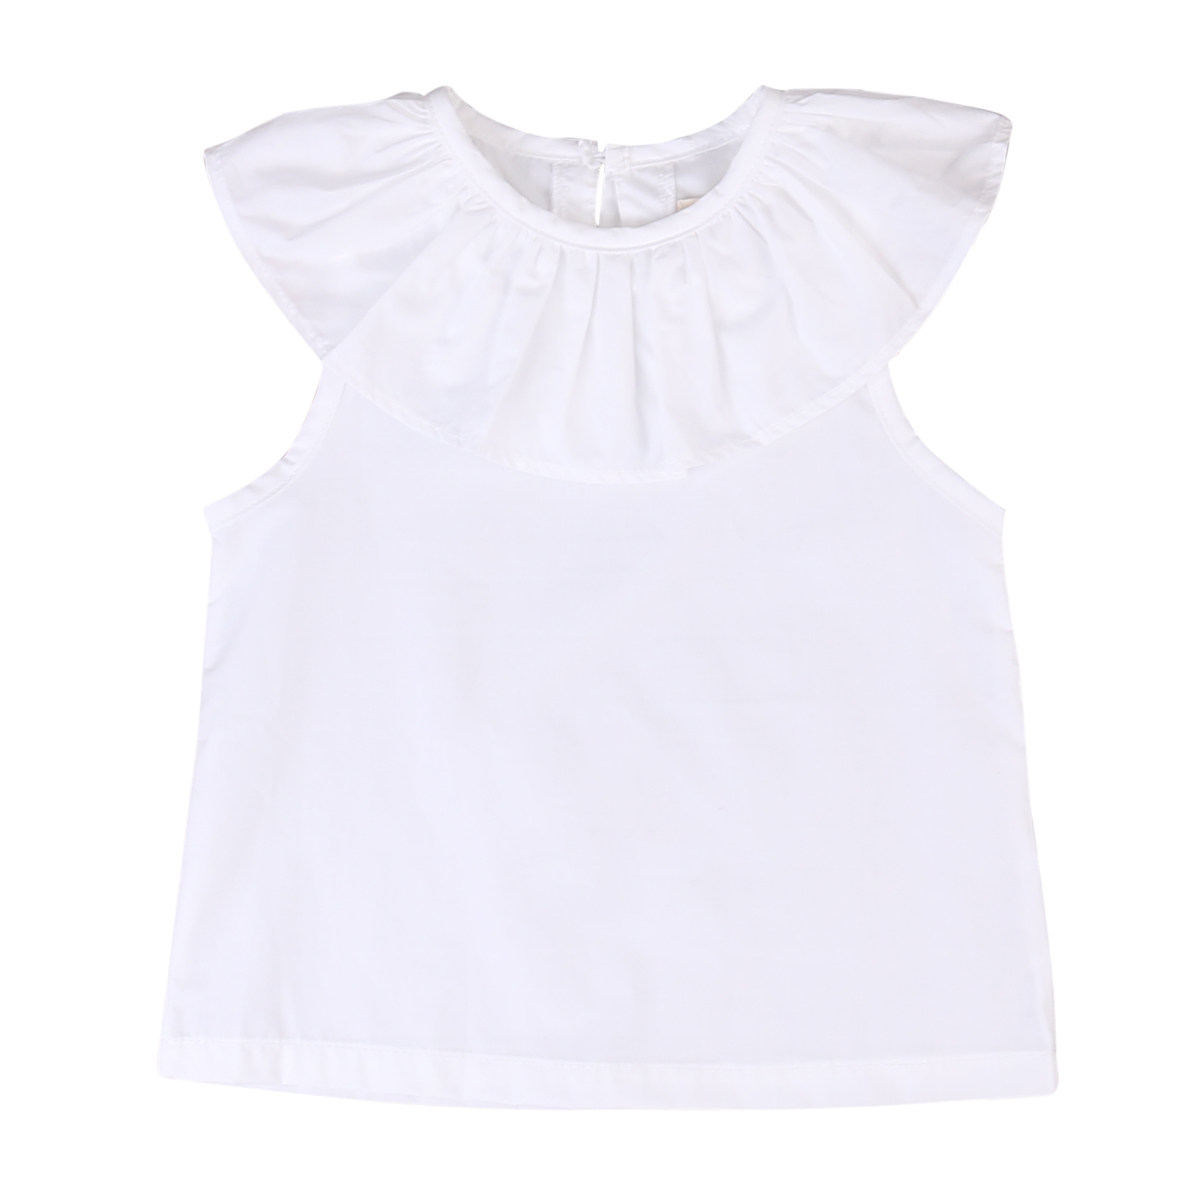 4bf10c64cfa ... Clothes Tees DX-CZX109. US  4.70 · 0-3T Casual Kids Baby Girl Summer  Short Sleeve Blouse Ruffle Collar Tops Cotton T